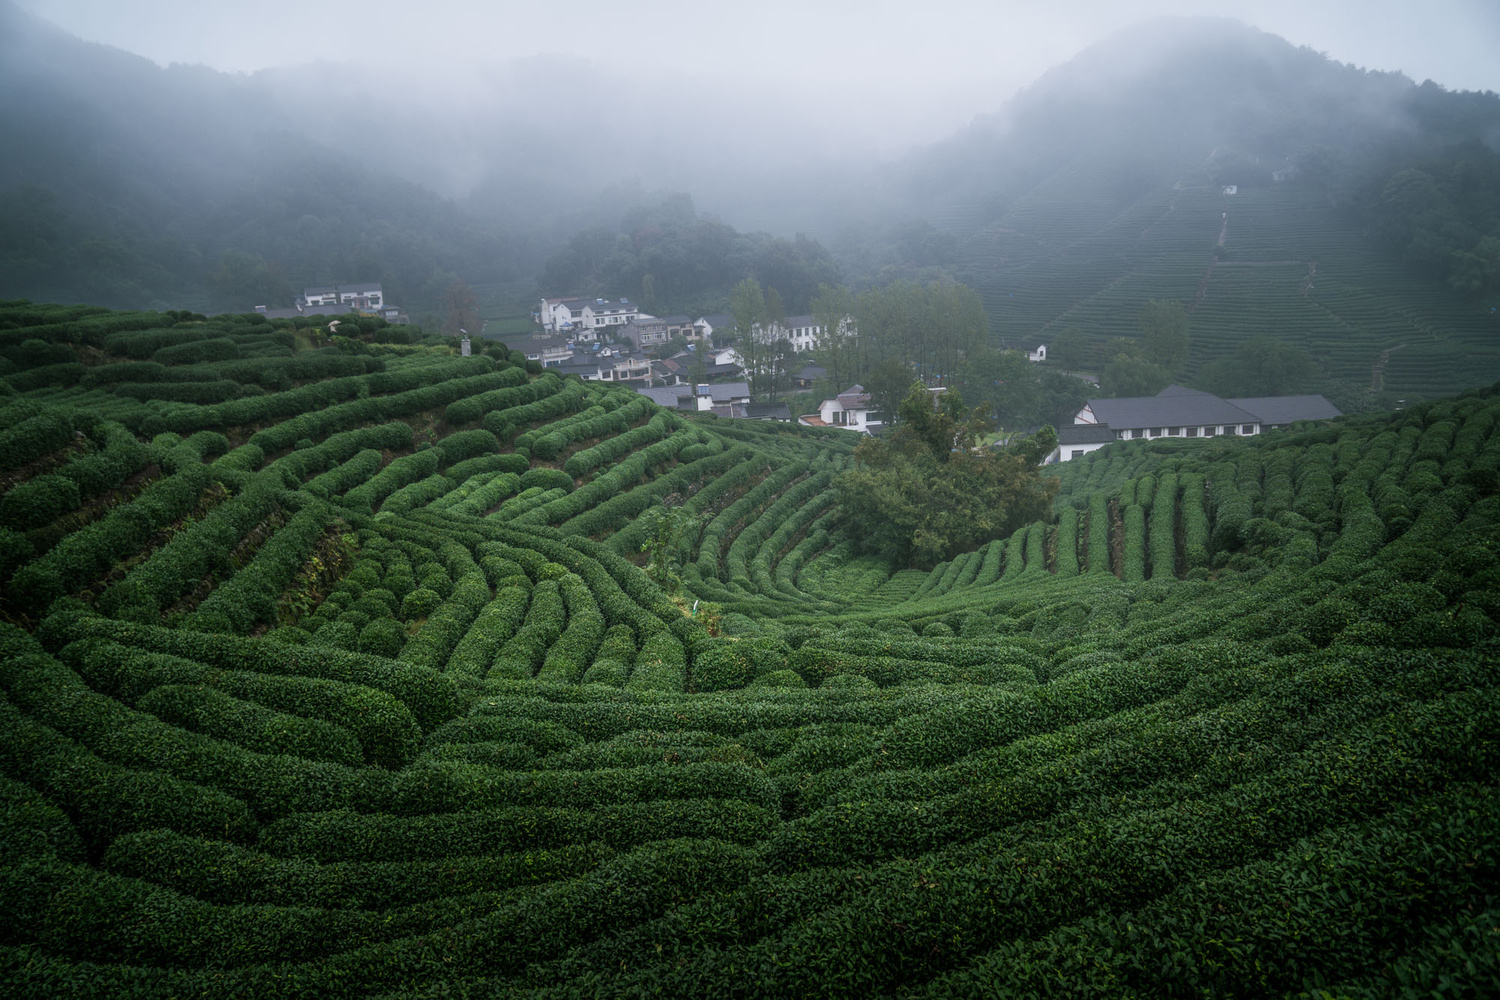 Rice terraces in China by Pavel Dvorak